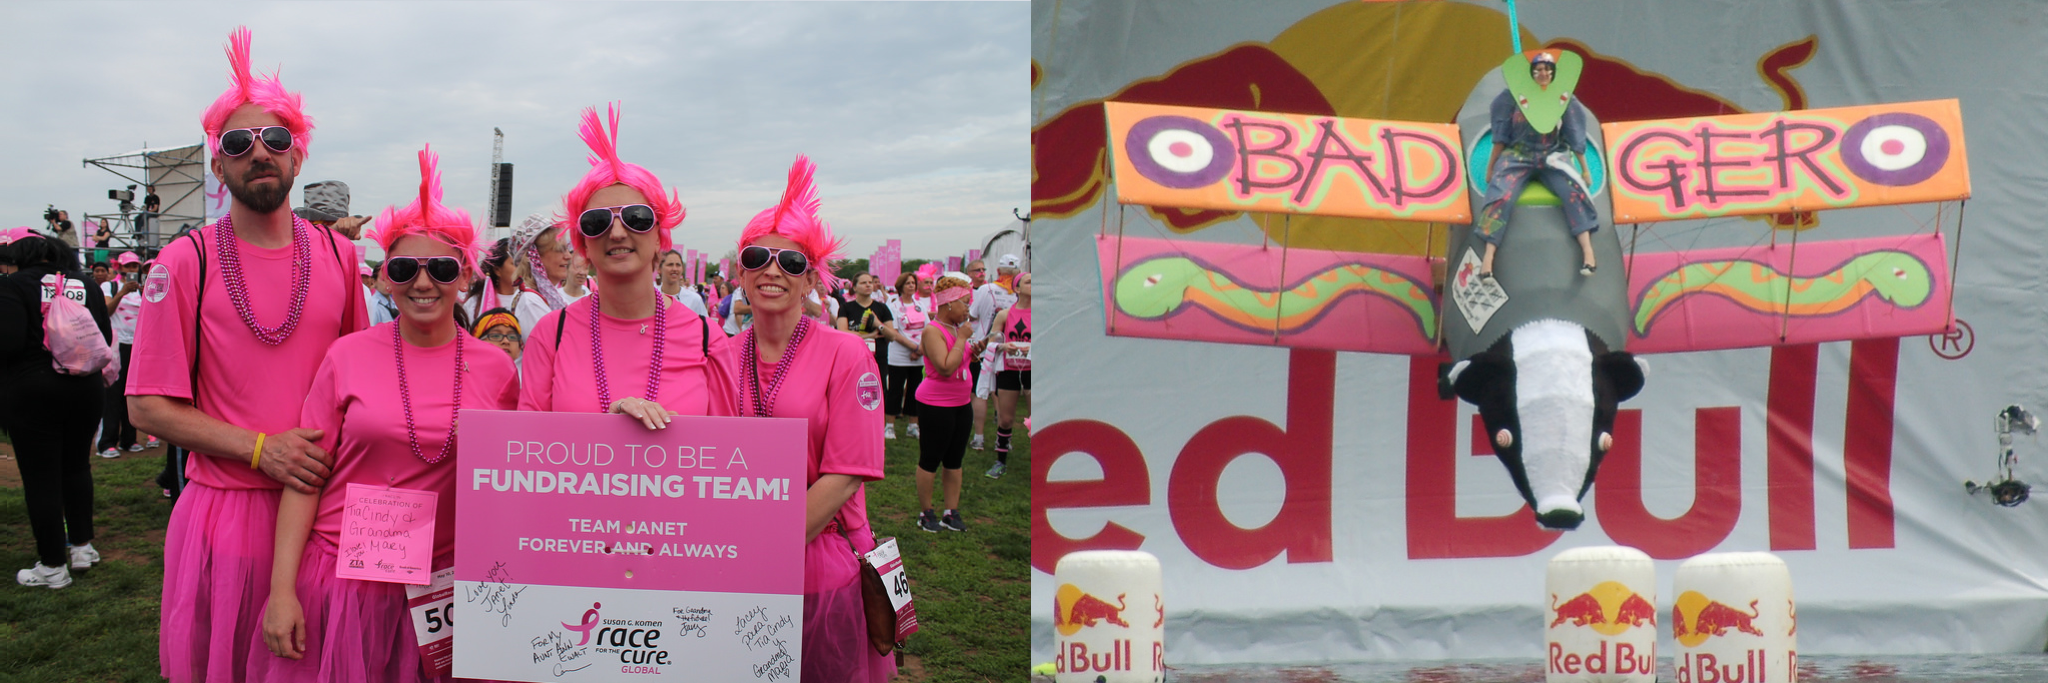 Left: Photo taken at a Race for the Cure event: Four pink-haired people clothed all in pink hold a sign that says, Proud to be a fundraising team! Team Janet forever and always. Right: Photo taken at a Red Bull Flugtag event: A person rides a small biplane that looks like a badger. The plane's wings are brightly colored, feature cartoon snakes, and read Badger. The plane is in front of a giant Red Bull sign and above several inflated cans of Red Bull.